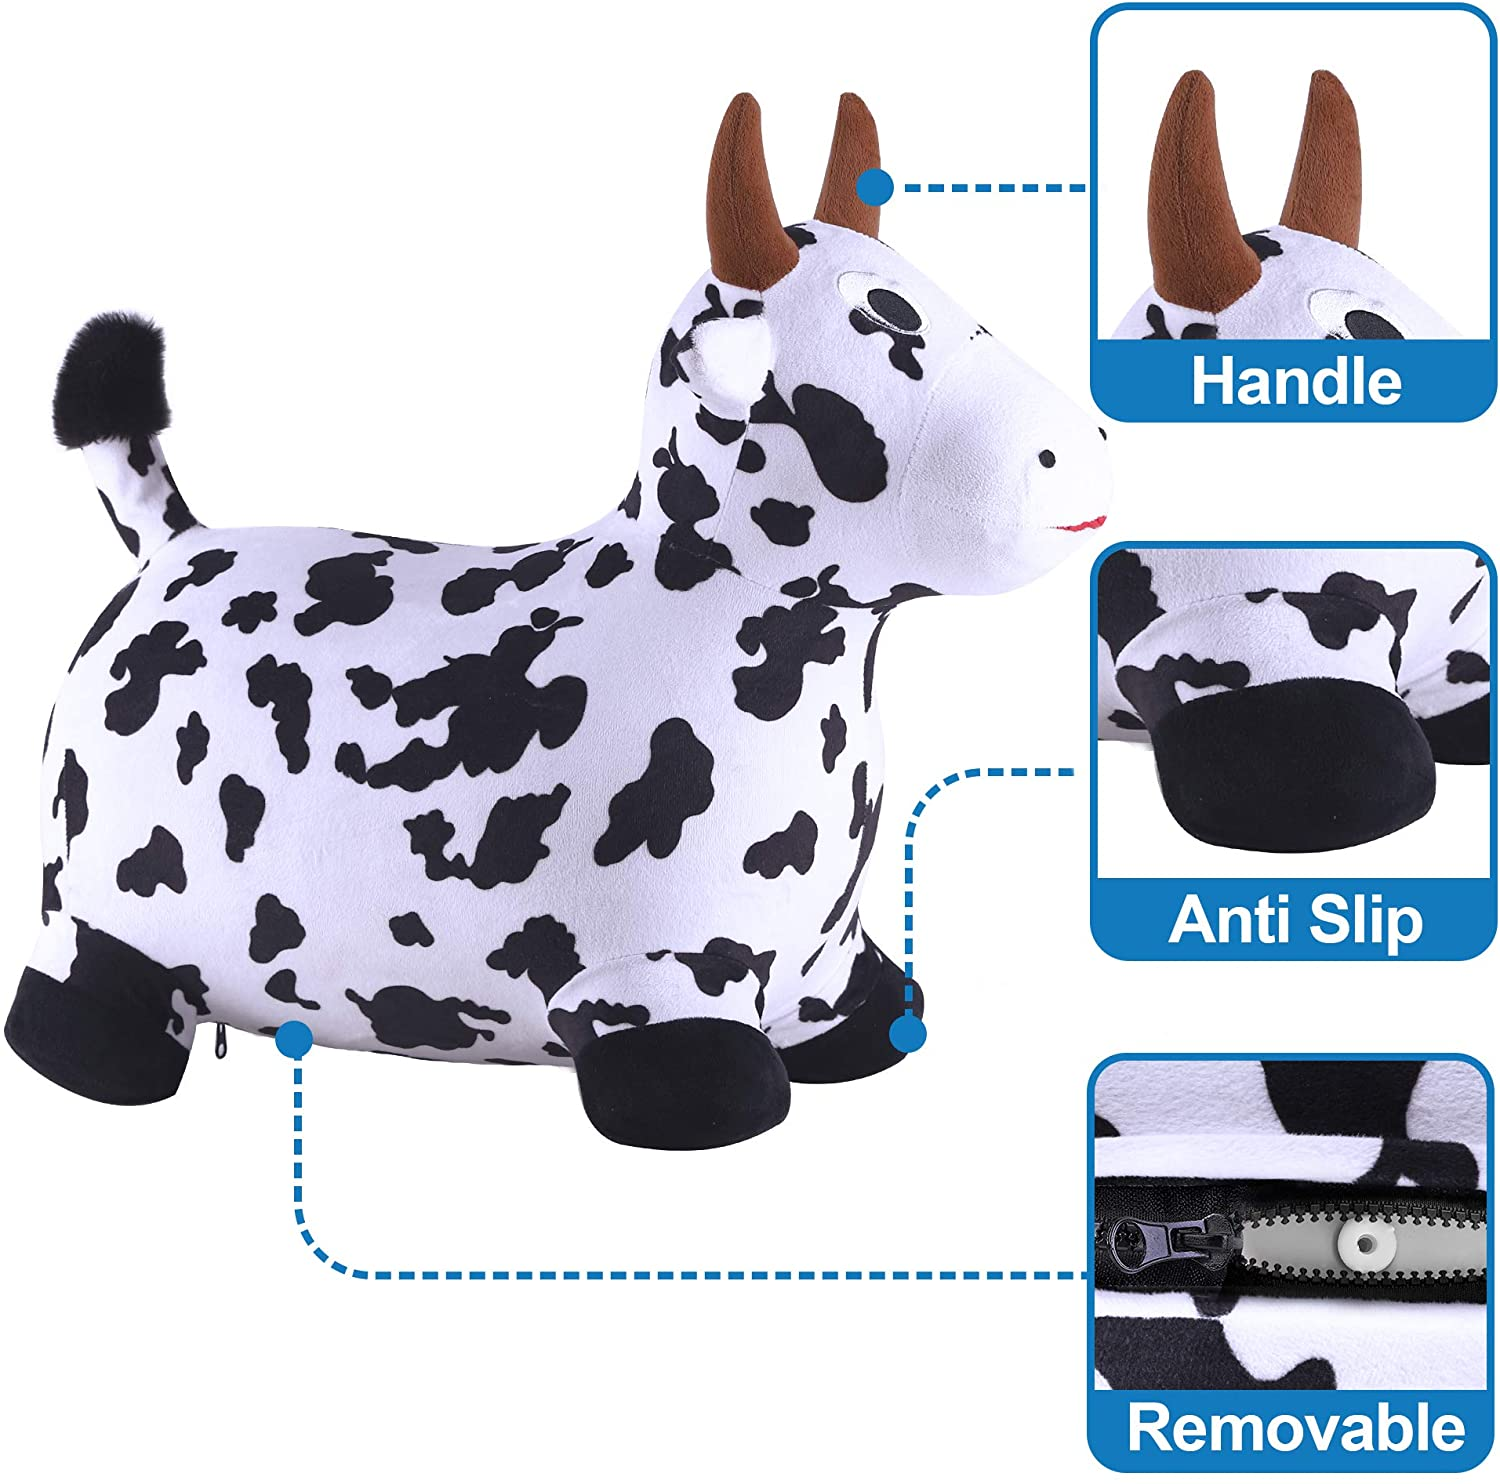 Bouncy Pals Cow Hopping Horse Outdoor Ride On Bouncy Animal Play Toys Activities Gift for 2-10 Year Old Kids Toddlers boy girl